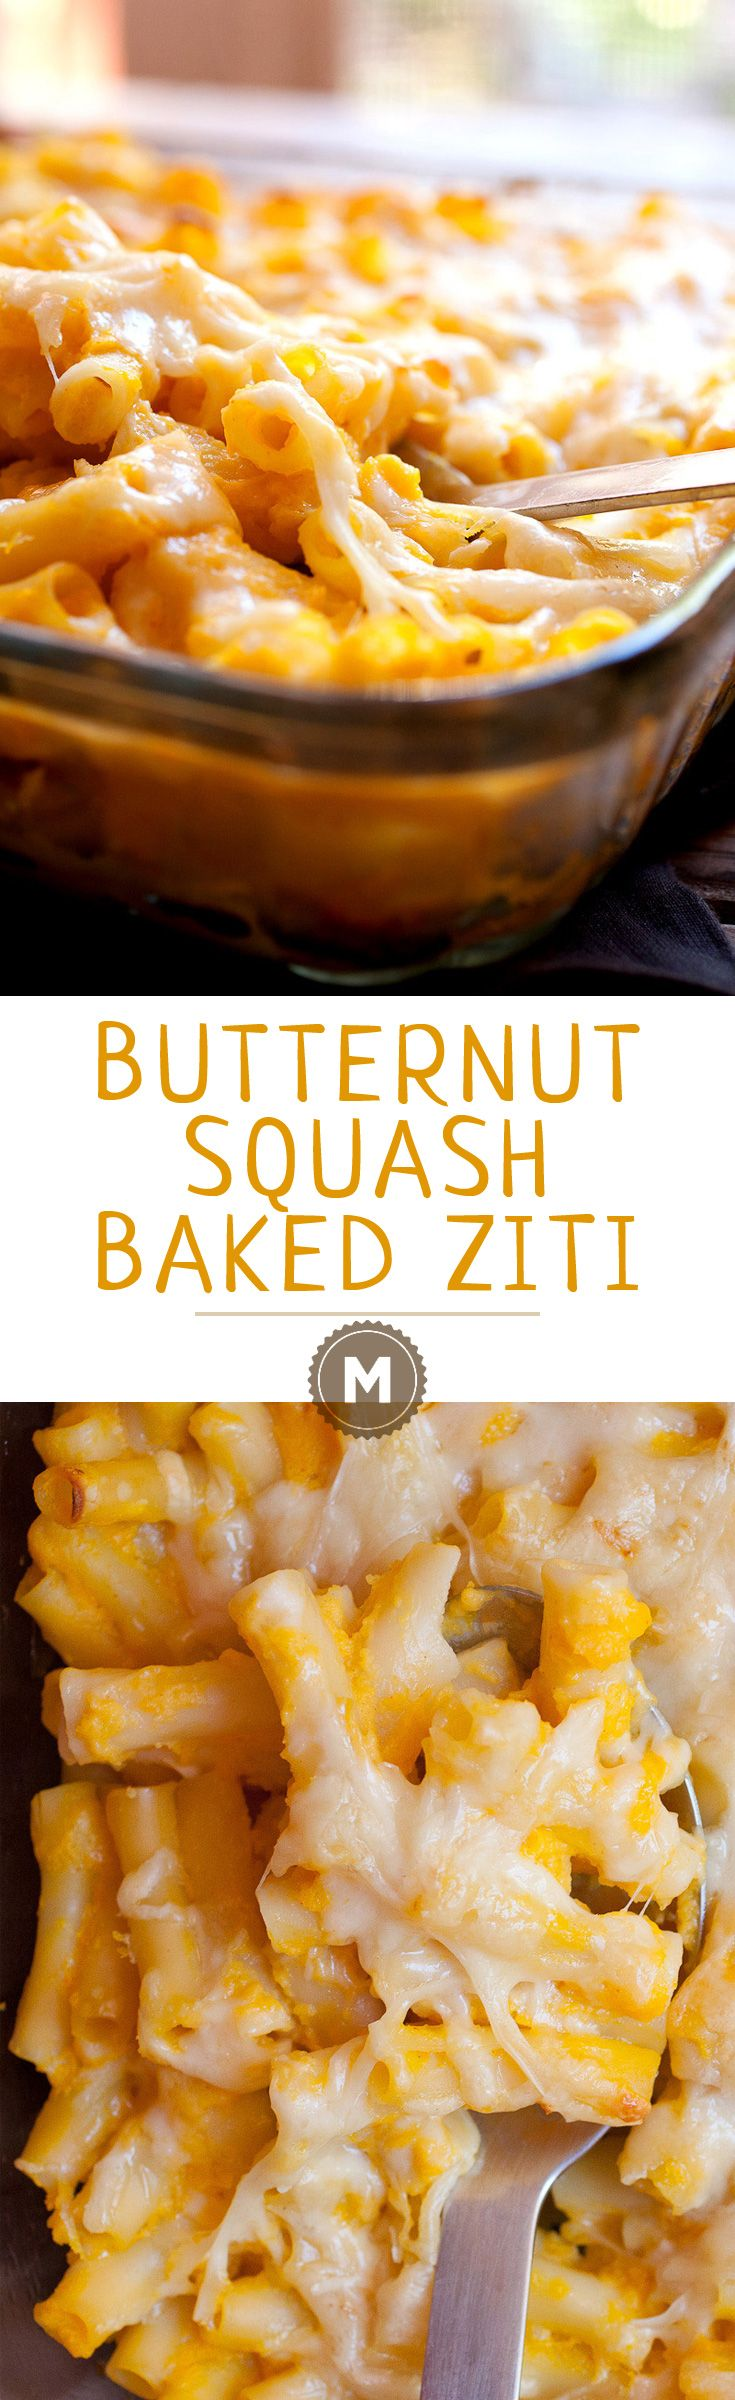 Butternut Squash Baked Ziti: This is such a great fall twist on classic baked ziti. Butternut Squash, Gruyere cheese, and a few spices to tie it all together. Easy to make and will feed a crowd! Baked ziti is the BEST! | macheesmo.com